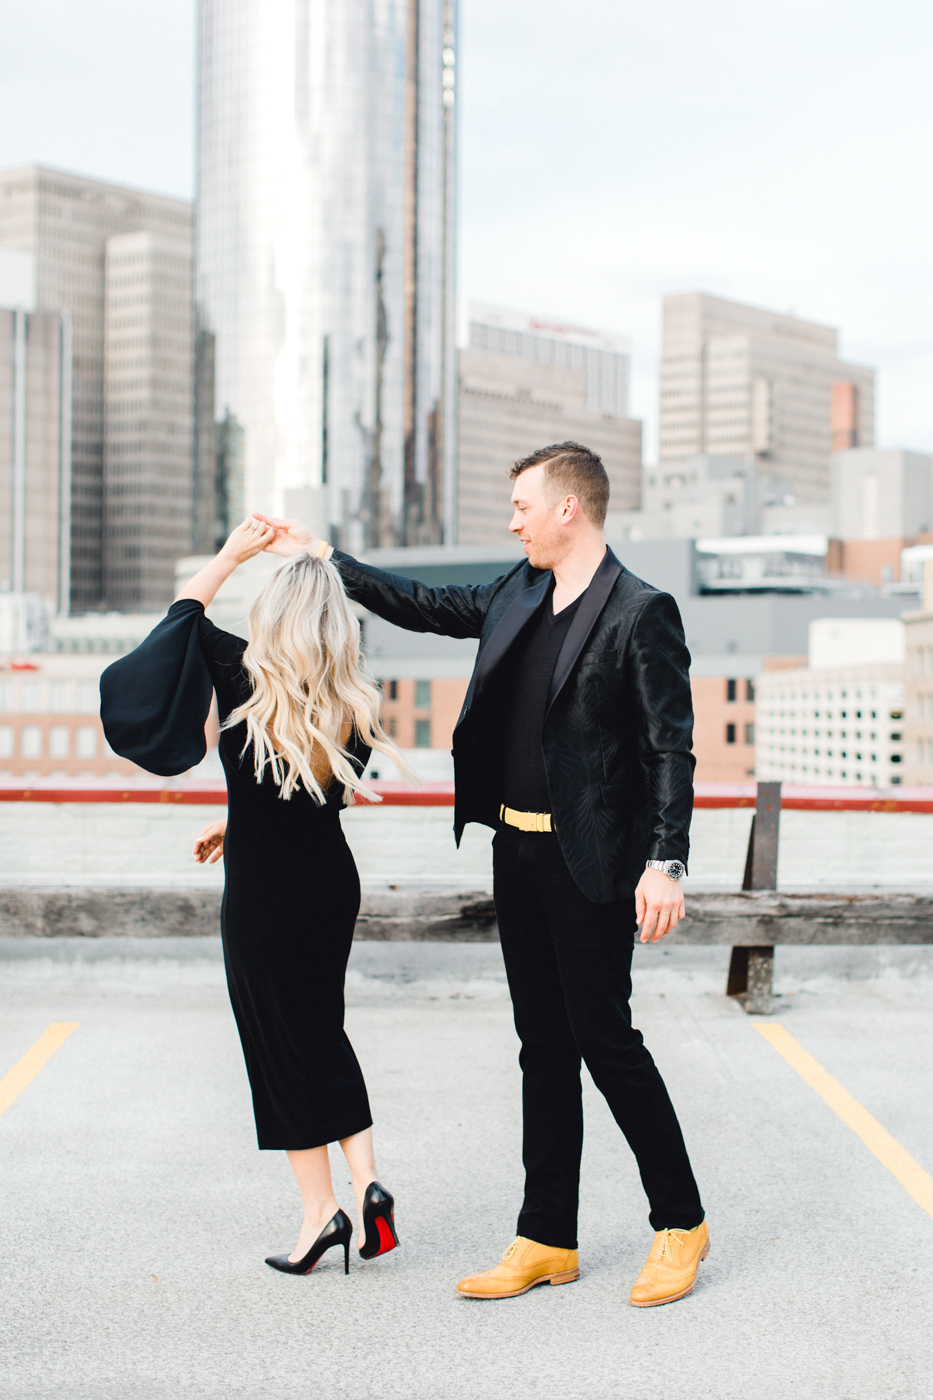 four corners photography best atlanta wedding photographer downtown atlanta engagement session engagement proposal ventanas downtown atlanta wedding atlanta wedding photographer-20.jpg